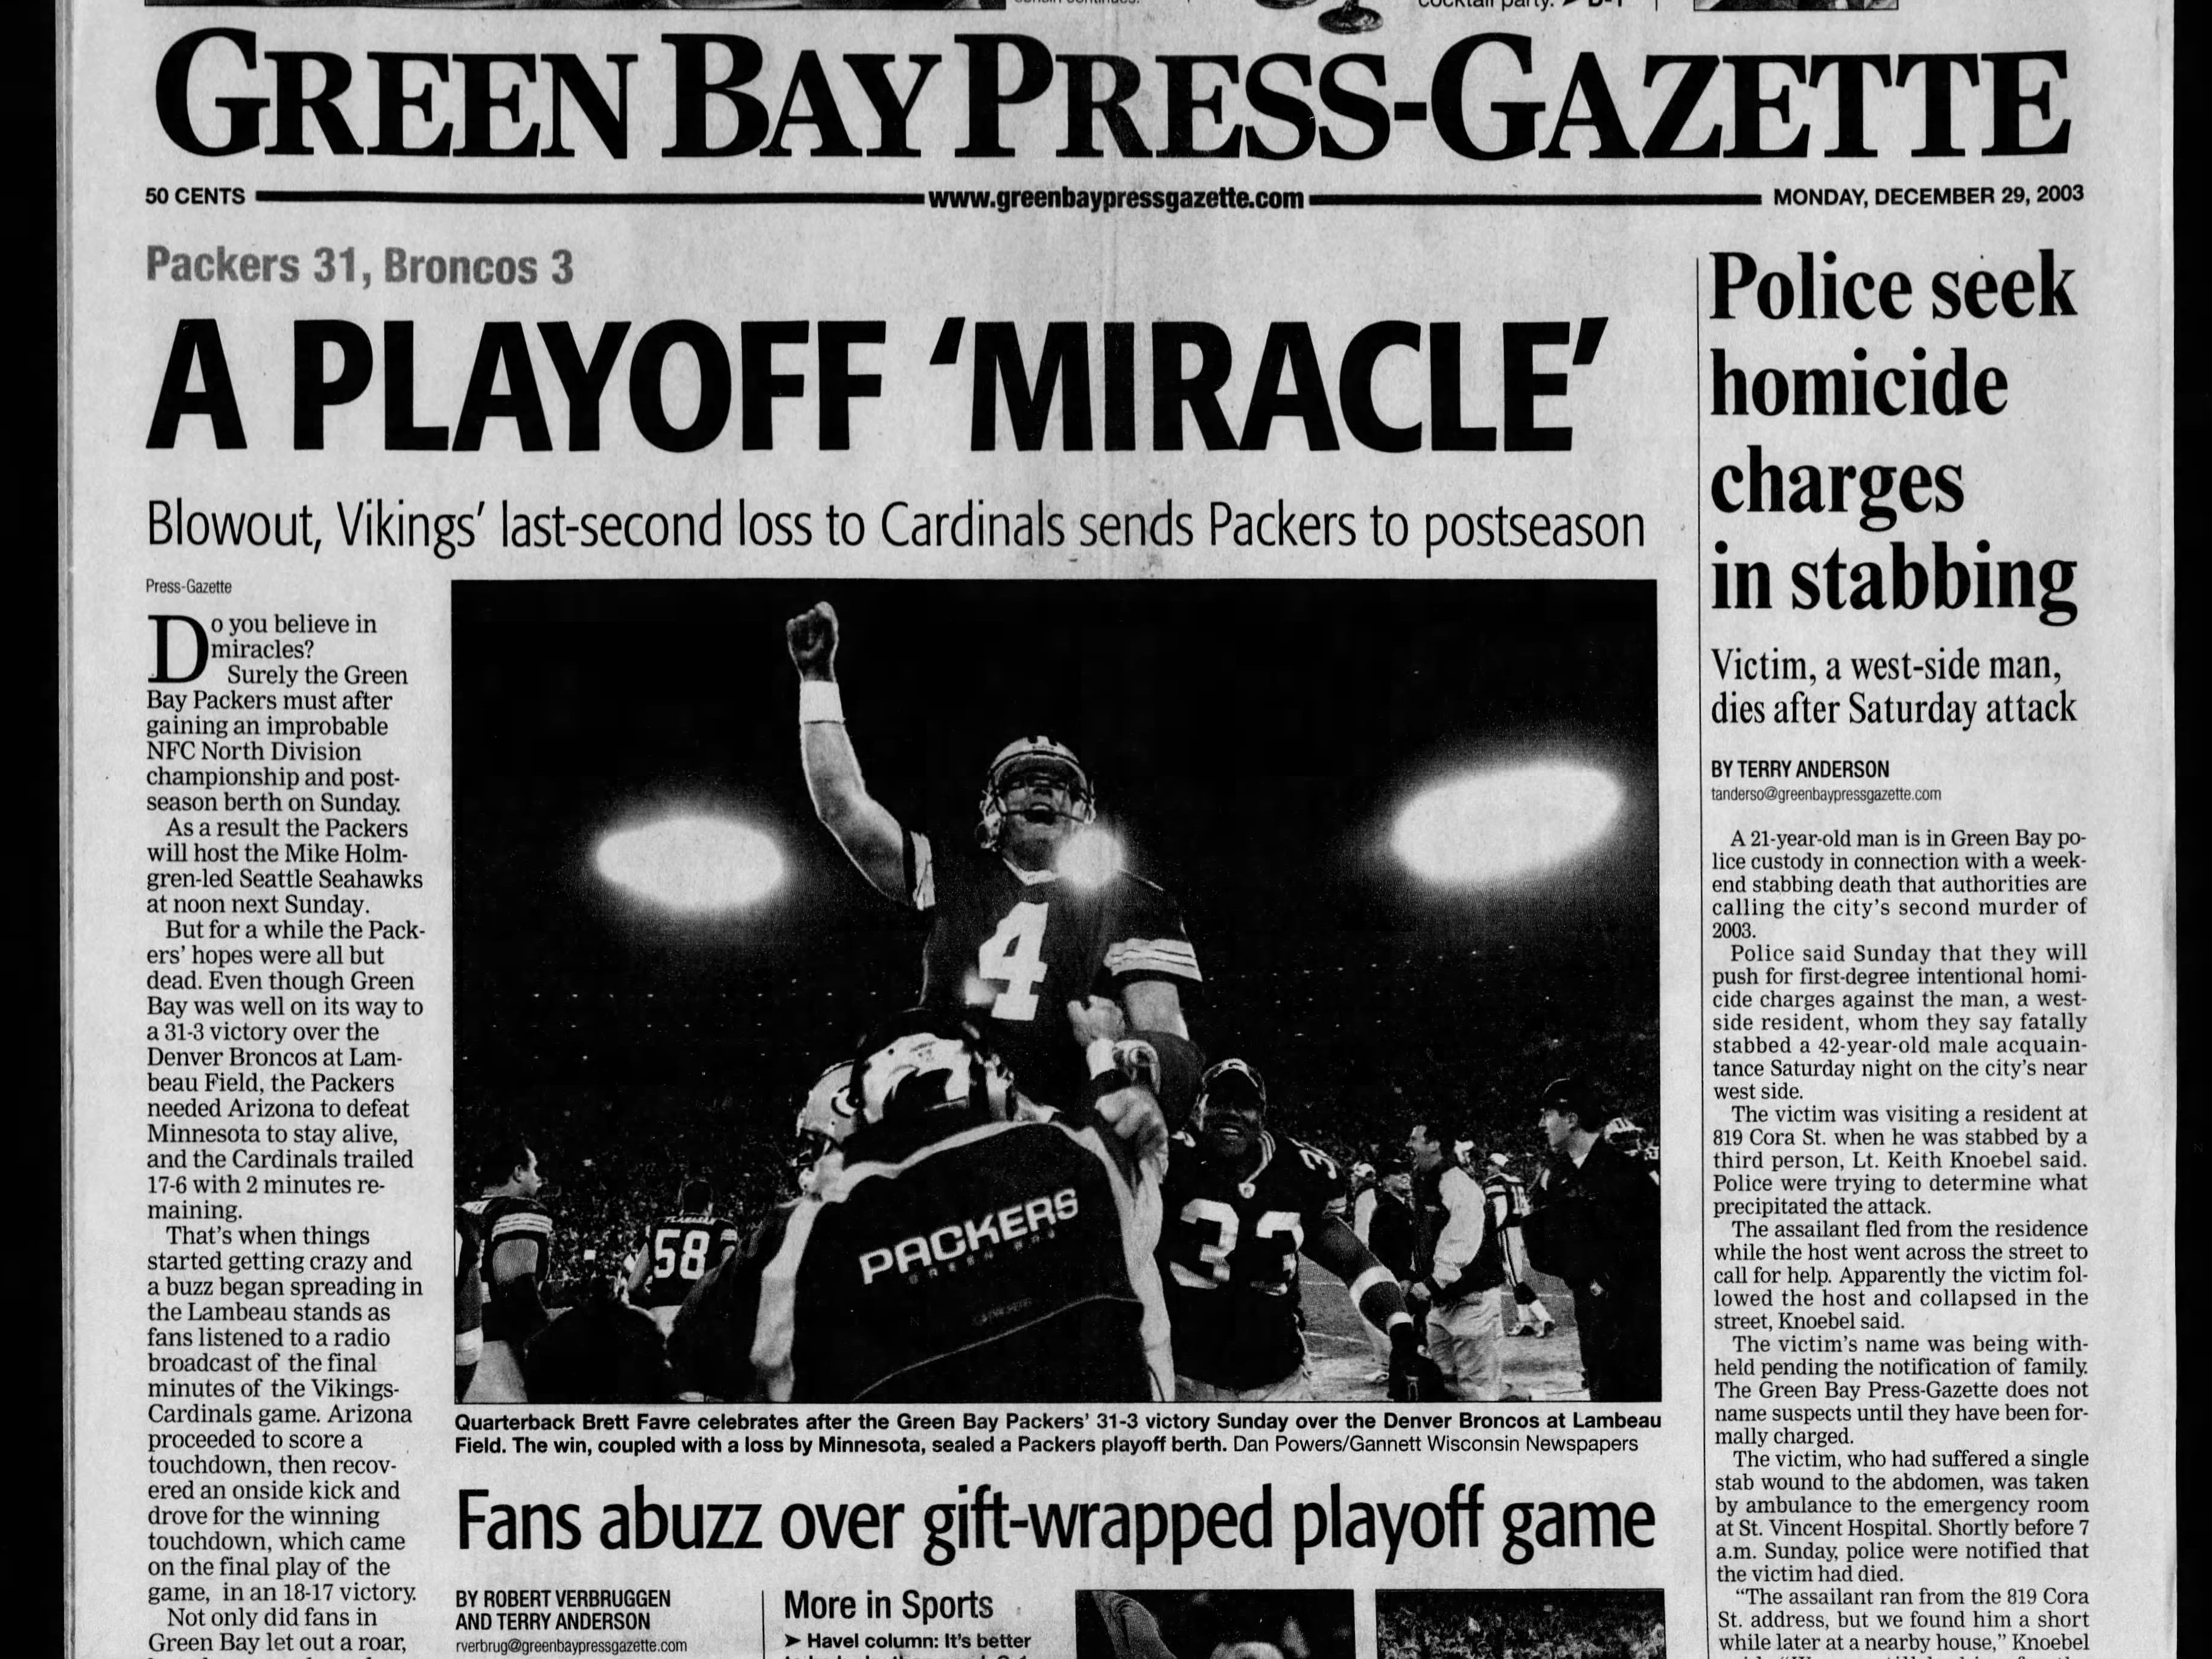 Today in History: Dec. 29, 2003